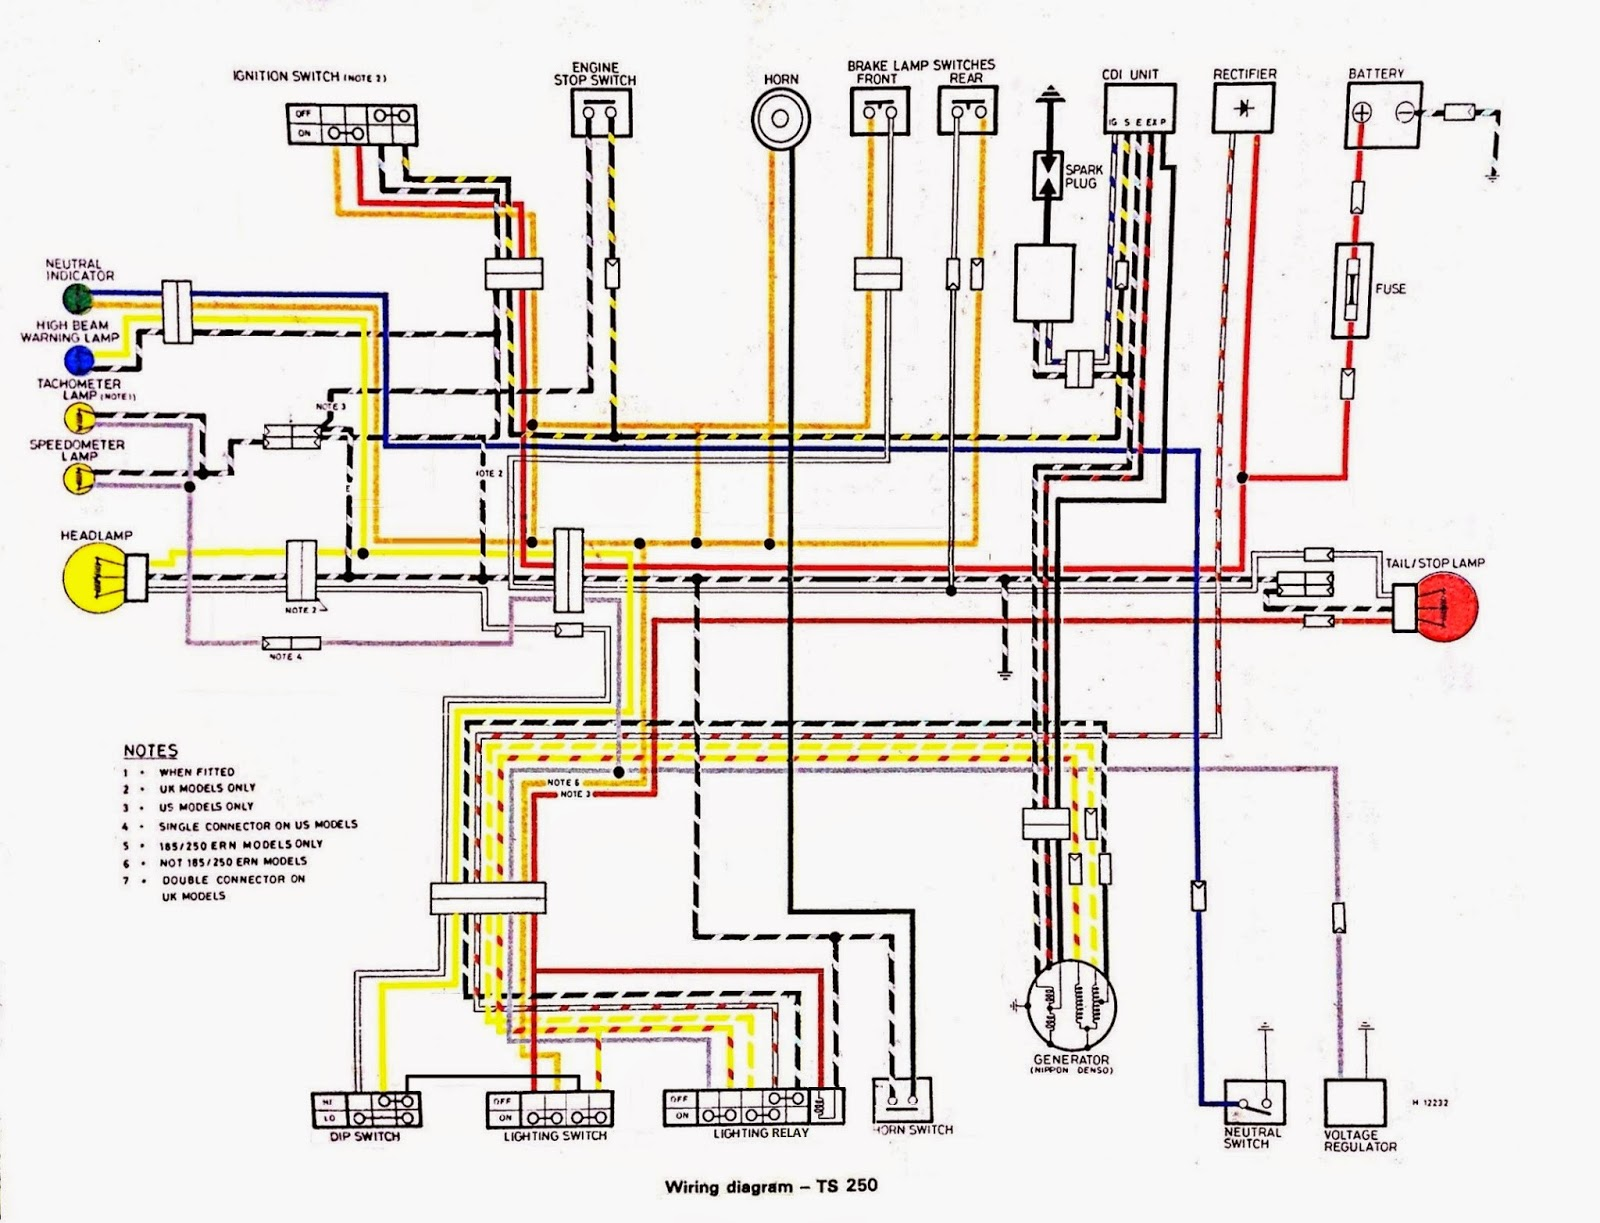 Ts250 Wiring Diagram Wire Center One Lead To The Led39s Cathode And Other Top Rail Suzuki Rebuild Part 4 Rewiring Rh Blogspot Com 1974 1969